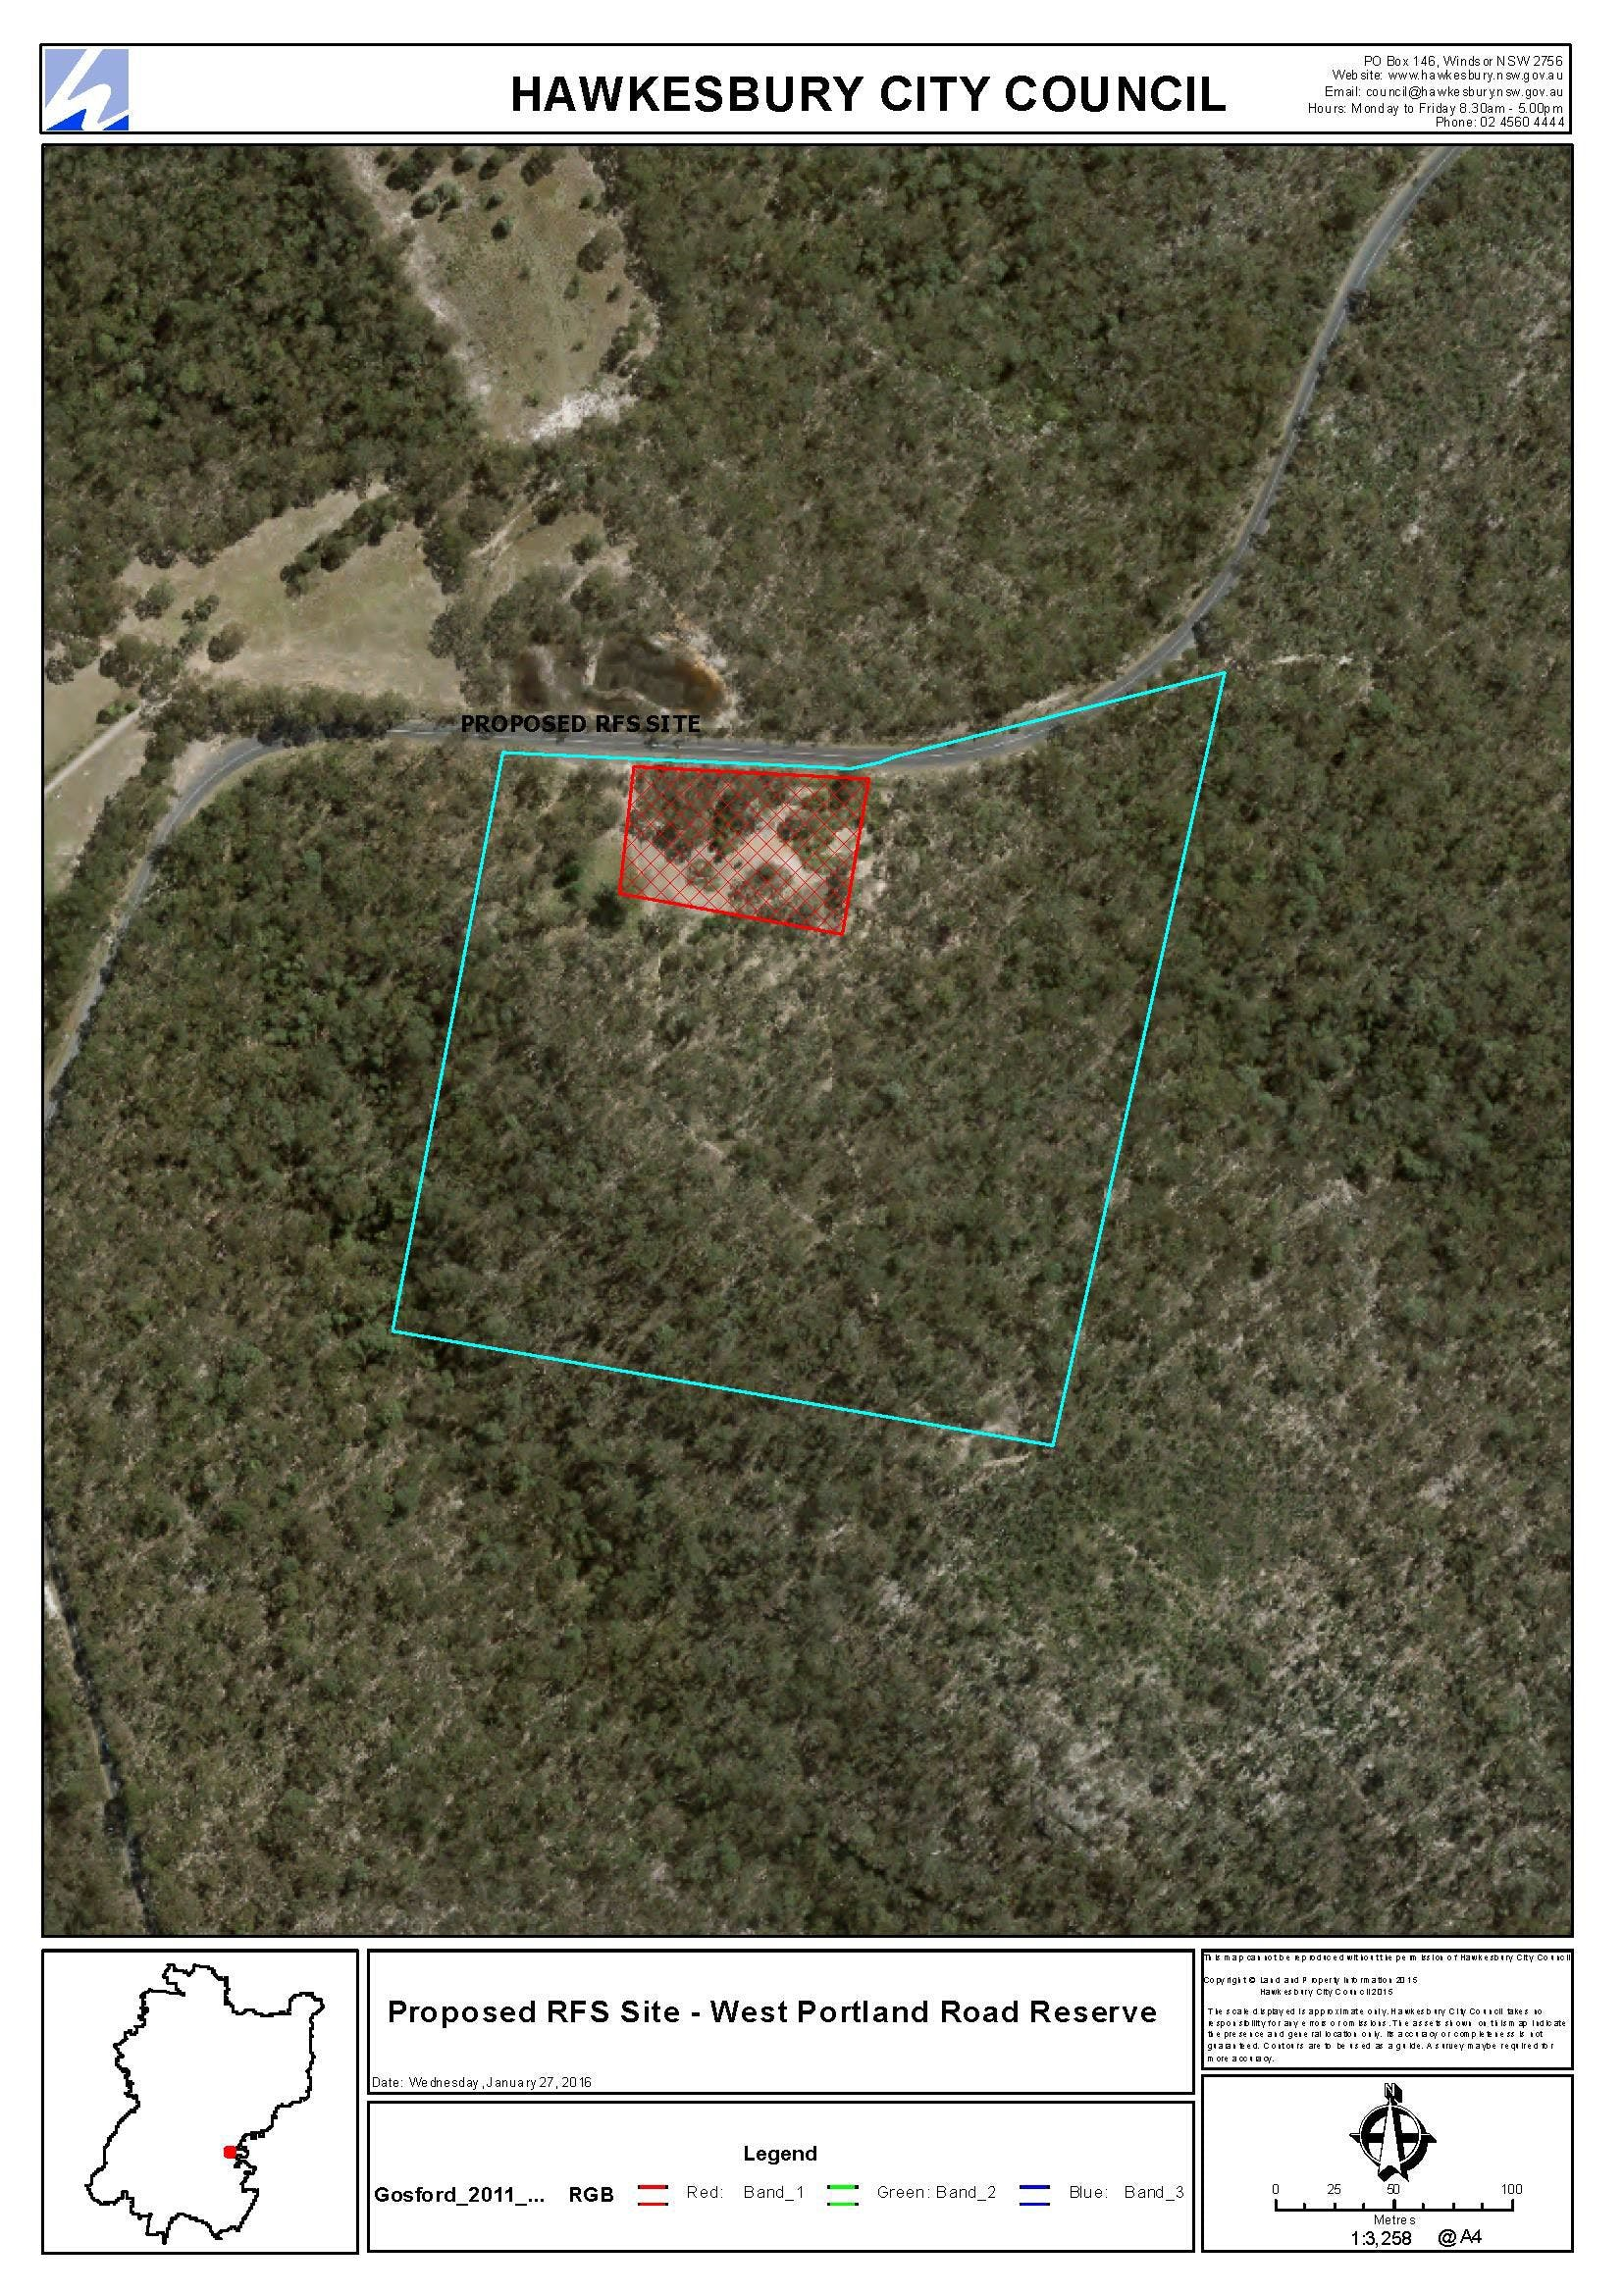 Rfs Fire Station   Proposed Site